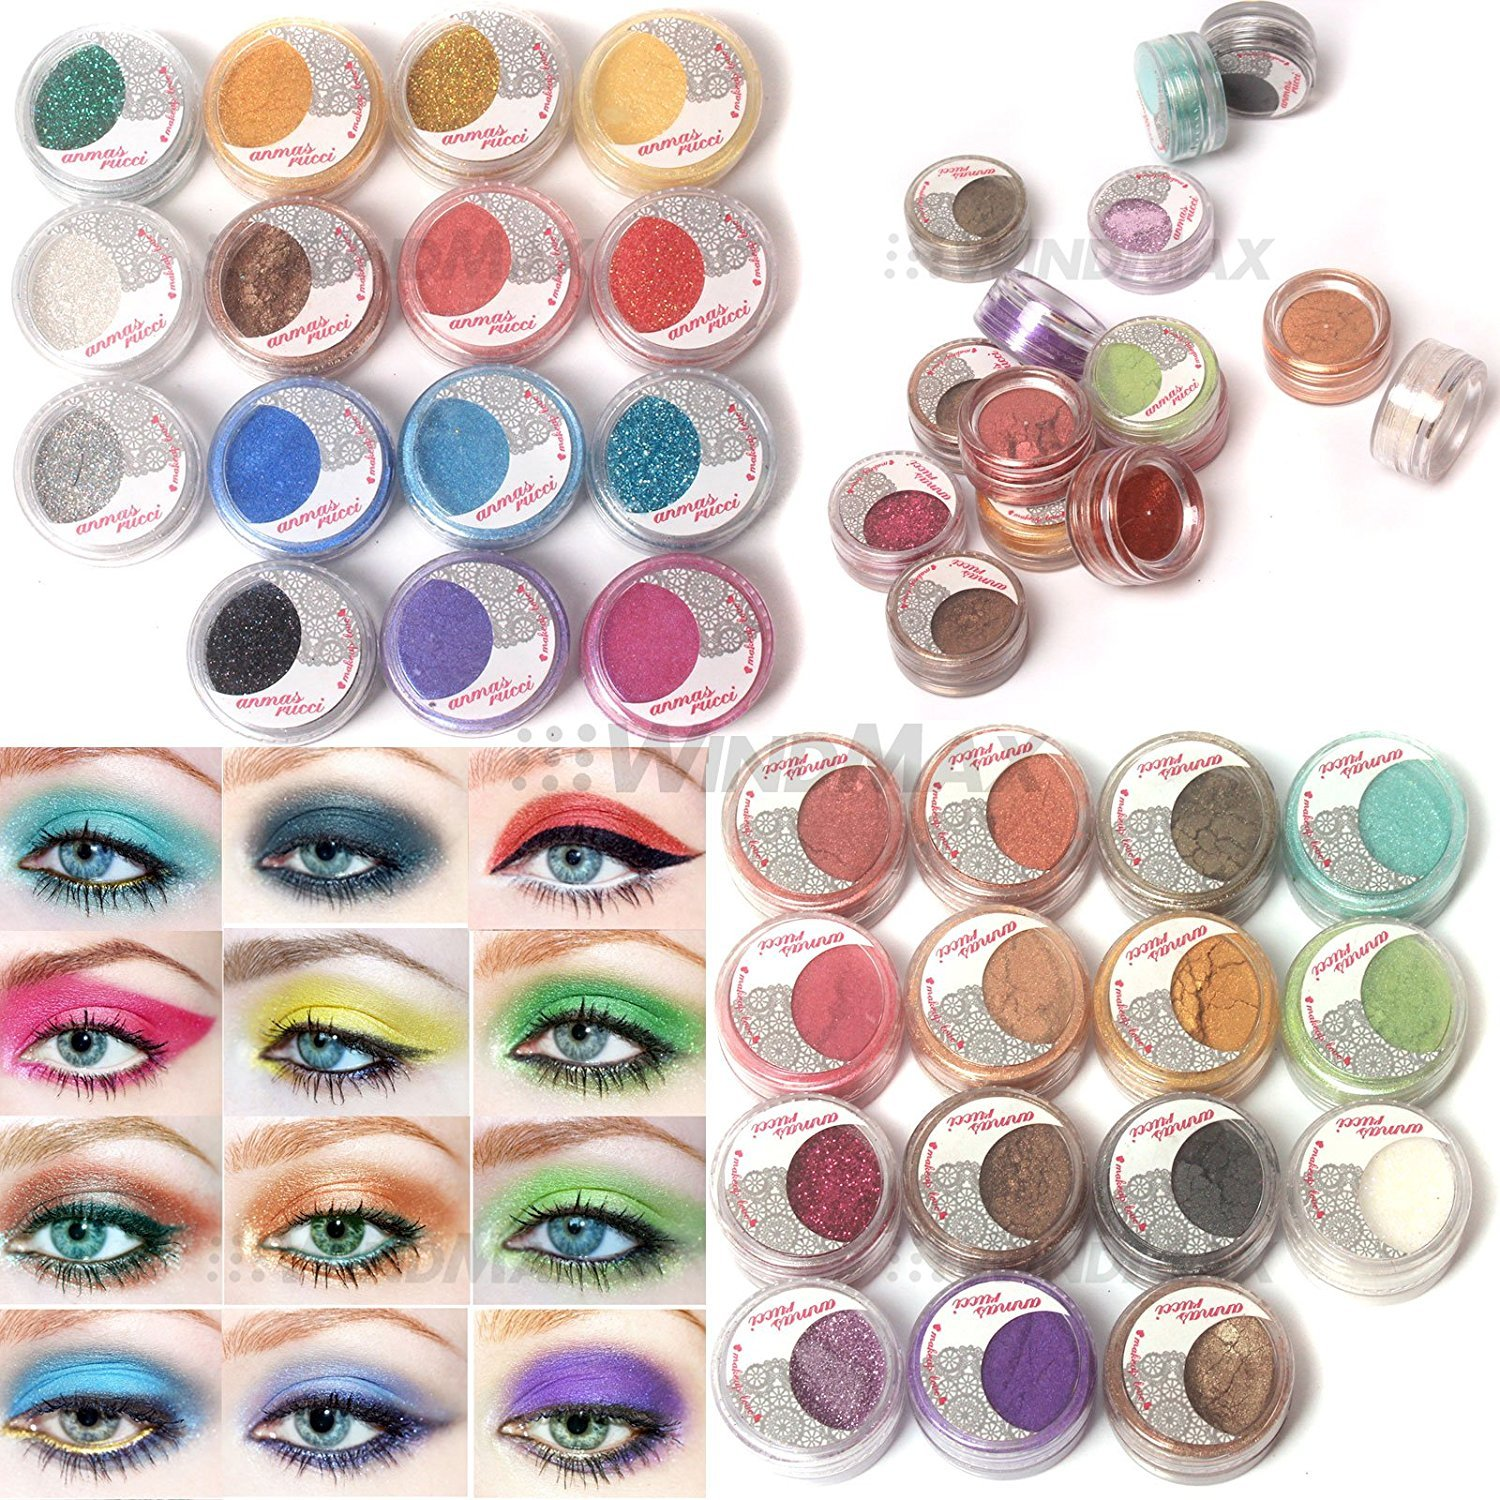 US Seller! Brithday Gift! Brand New 30 Mulit Color Cold Smoked Warmer Glitter Shimmer Pearl Loose Eyeshadow Pigments Mineral Eye Shadow Dust Powder Makeup Party Cosmetic Set WindMax